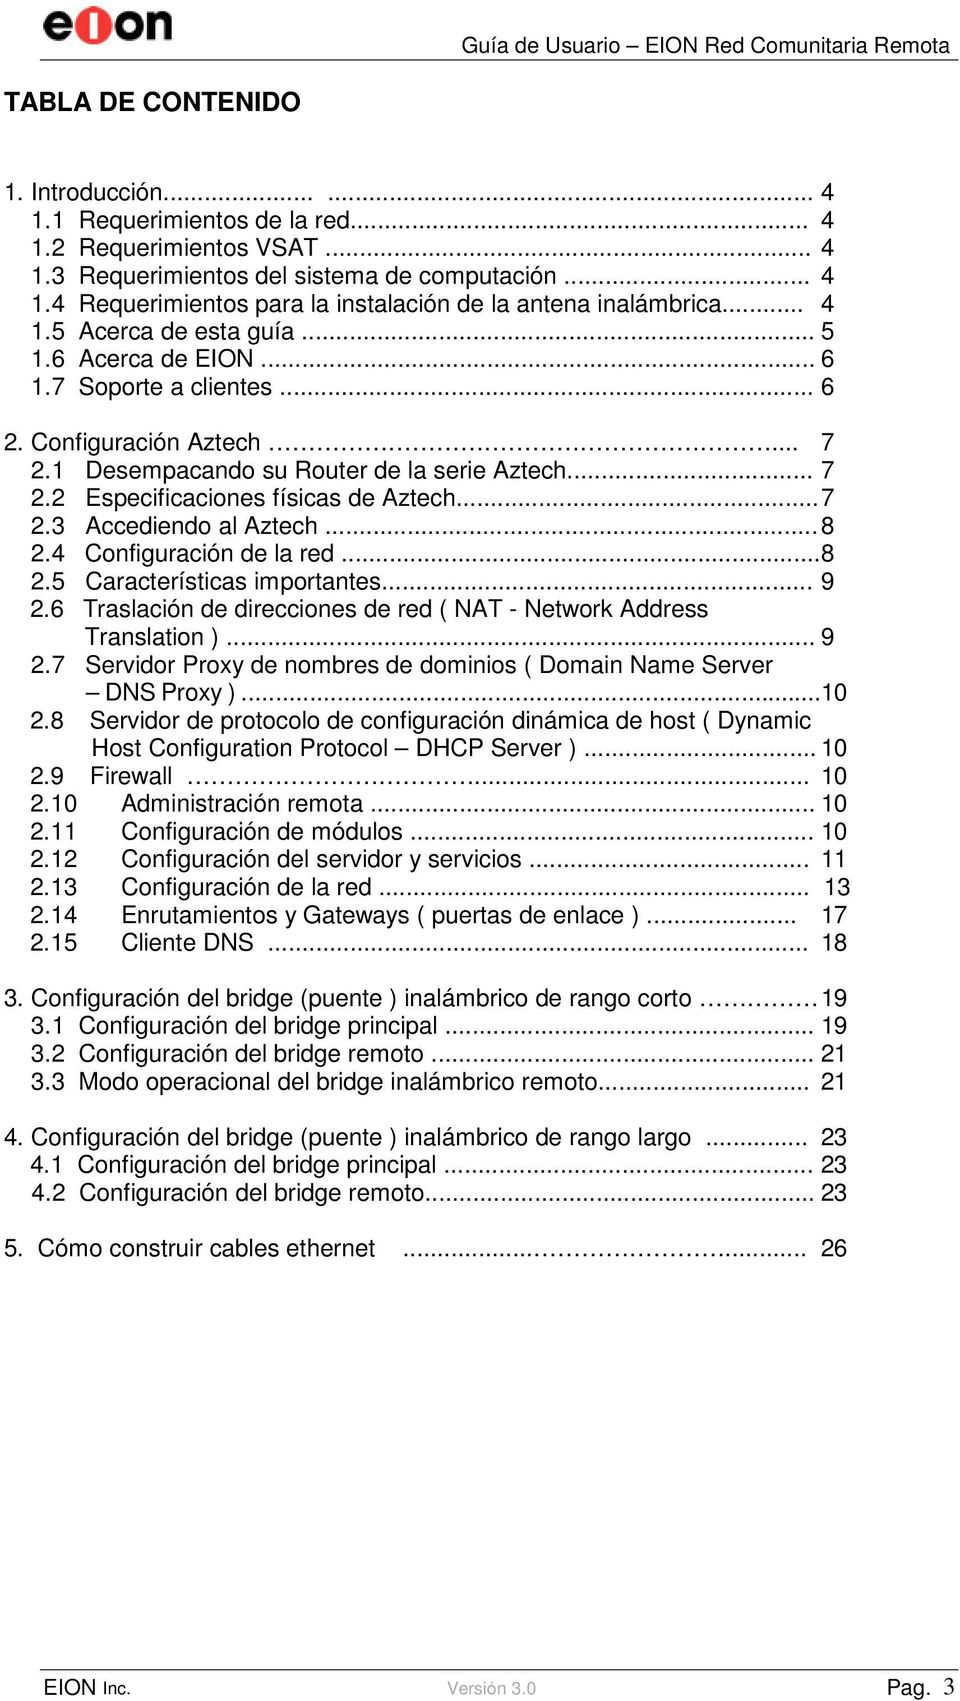 .. 7 2.3 Accediendo al Aztech... 8 2.4 Configuración de la red...8 2.5 Características importantes... 9 2.6 Traslación de direcciones de red ( NAT - Network Address Translation )... 9 2.7 Servidor Proxy de nombres de dominios ( Domain Name Server DNS Proxy ).